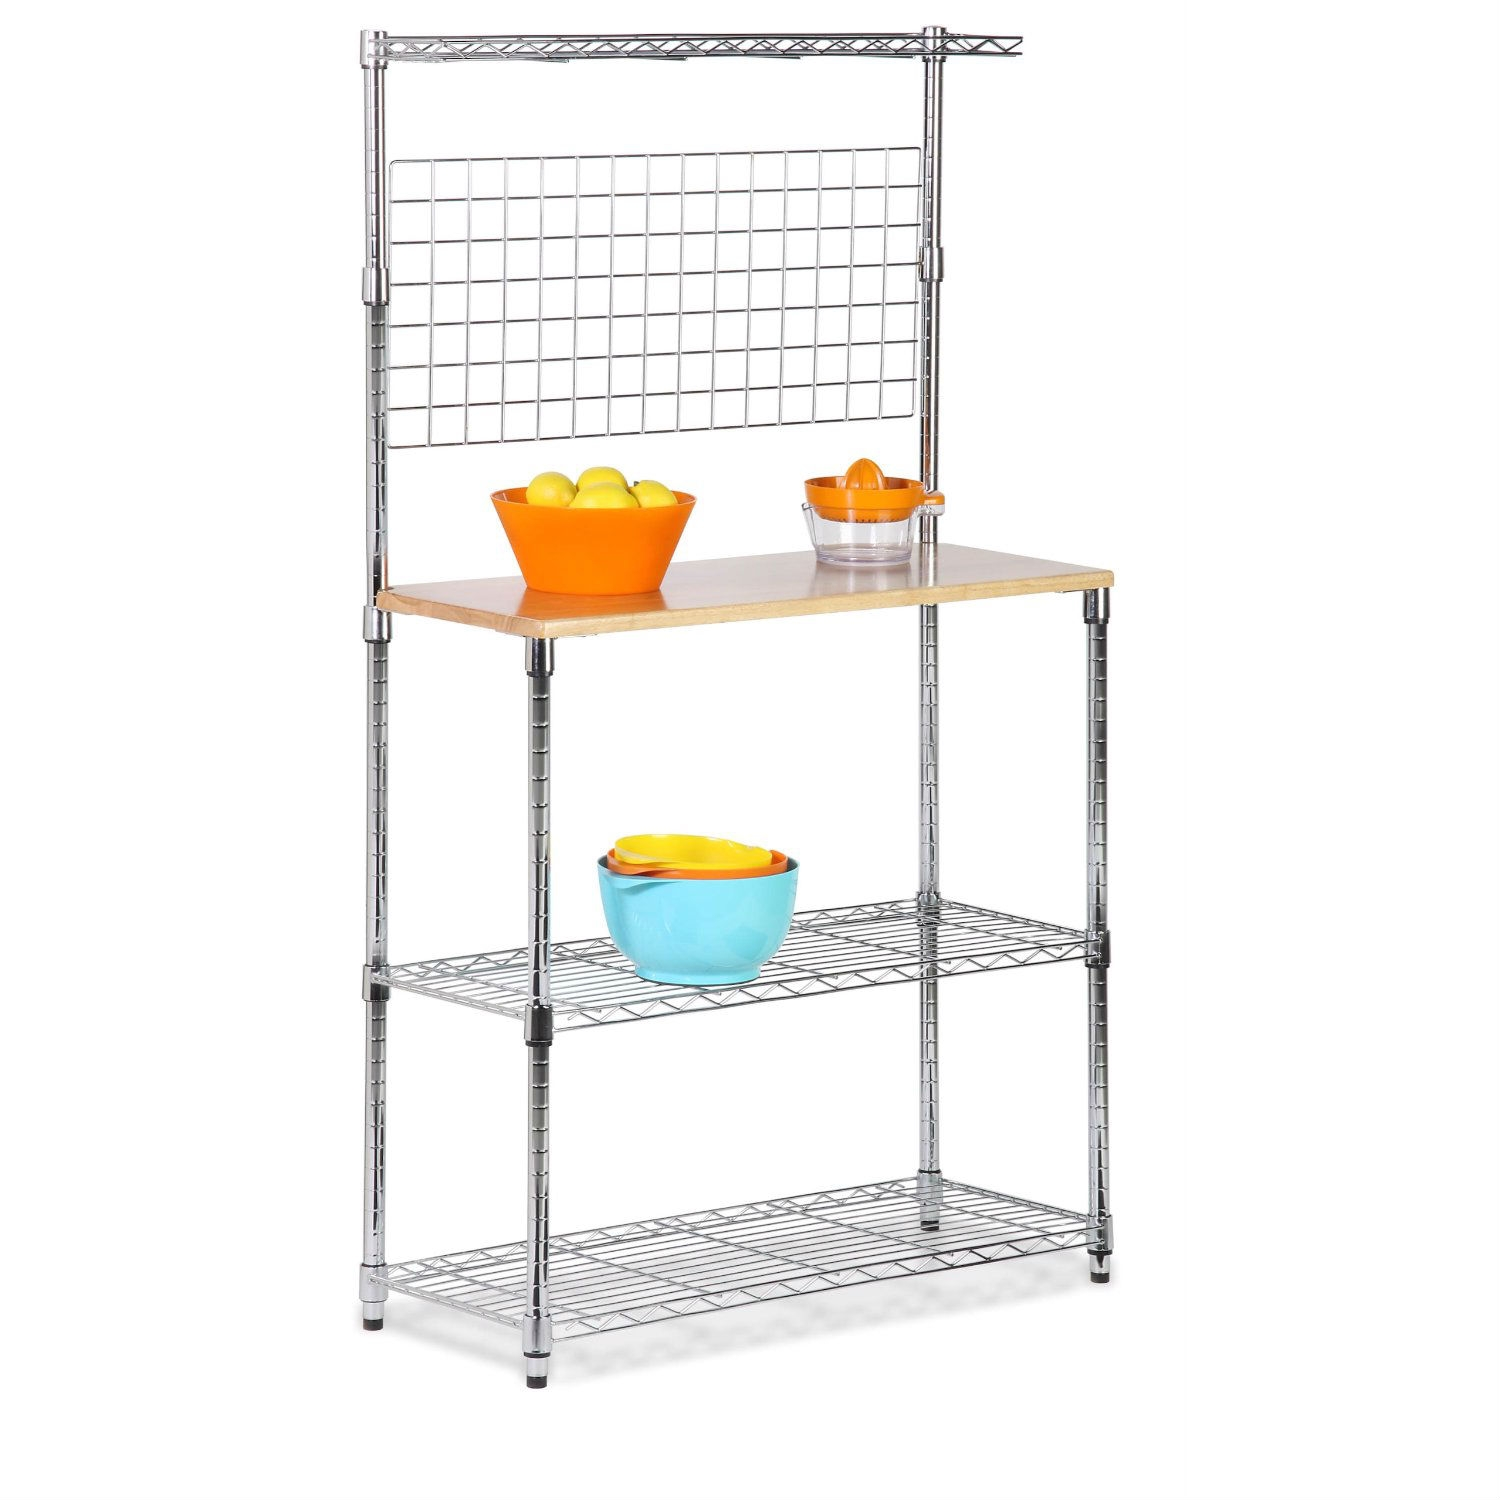 This Metal Backers Rack with Storage Shelves and Solid Wood Cutting Board is a convenient way to add additional space and organization to your kitchen. Features: Wood cutting board for food preparation, bonus top rail for spices, durable metal construction, 2 full-sized adjustable shelves (200 pound capacity evenly spaced), and an open wire design for easy cleaning. requires a screwdriver to mount the cutting board to the metal brackets. The unit is 35.75 inches wide, 14.25 inches deep and 61.25 inches tall. The Urban Baker's Rack is an easy way to gain all the additional kitchen storage you need. This steel rack is sturdy enough to hold everything from appliances to pots and pans. Adjustable wire shelf Pot rack along the back. Maple counter top. Leg levelers. Made of steel.